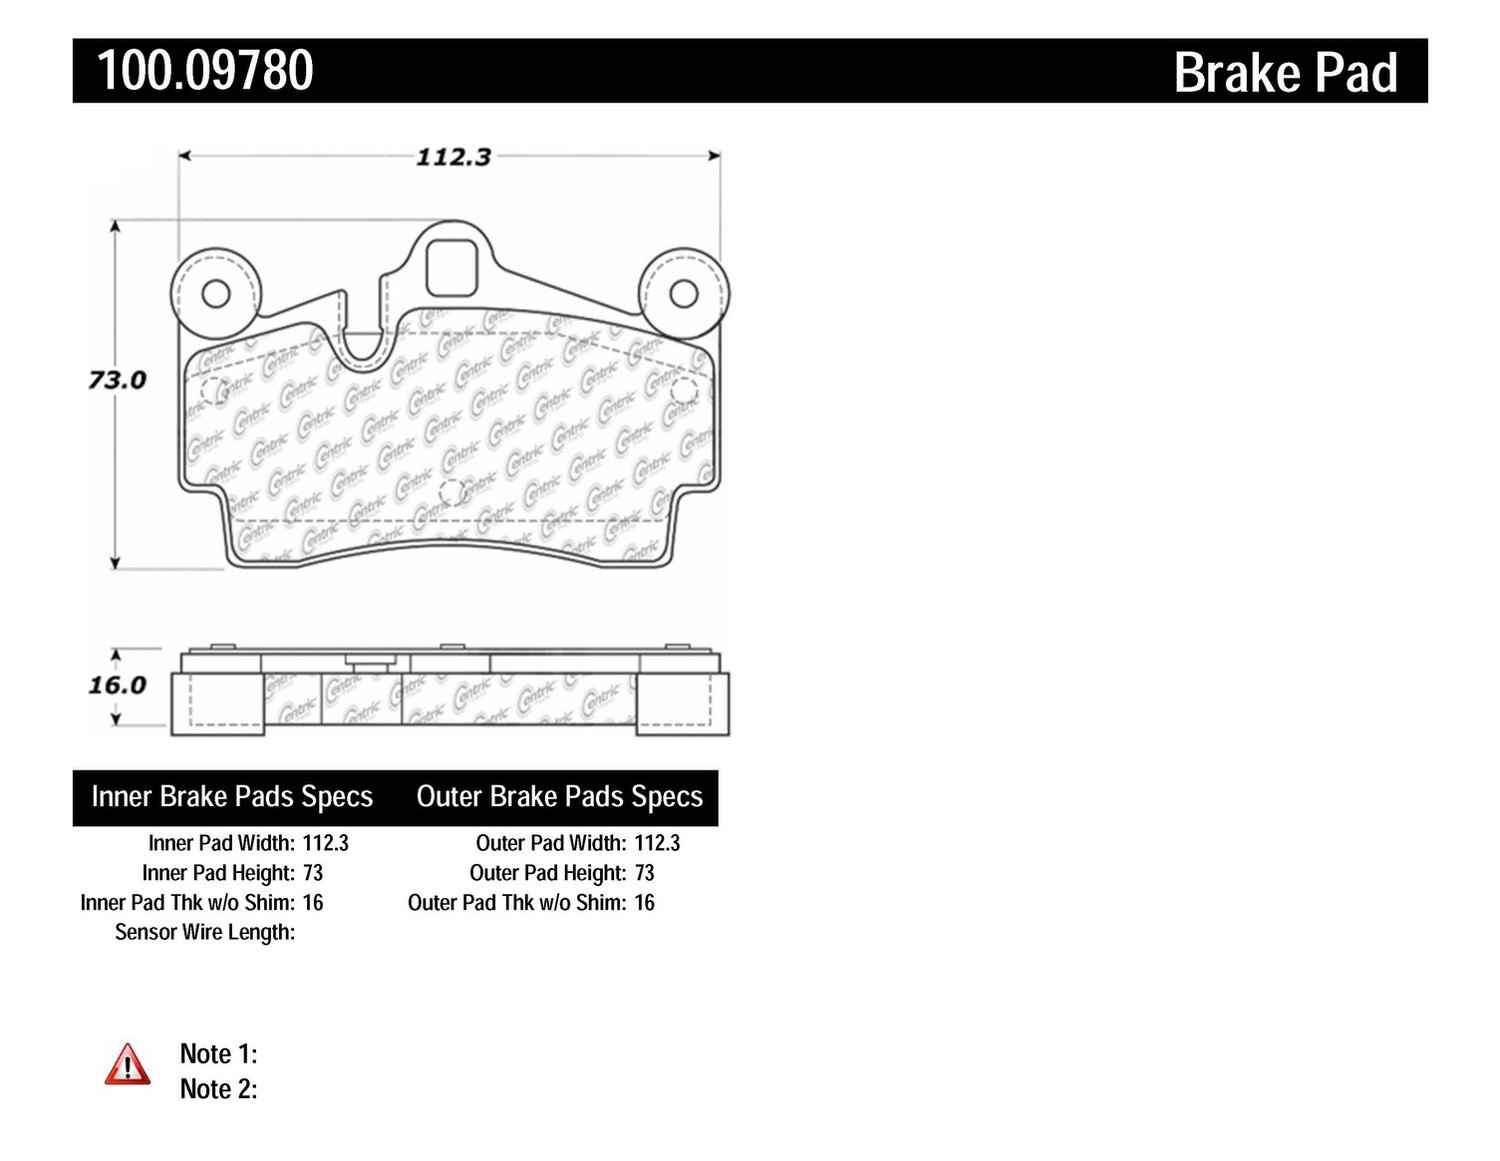 CENTRIC PARTS - OE Formula Brake Pads w/Hardware (Rear) - CEC 100.09780